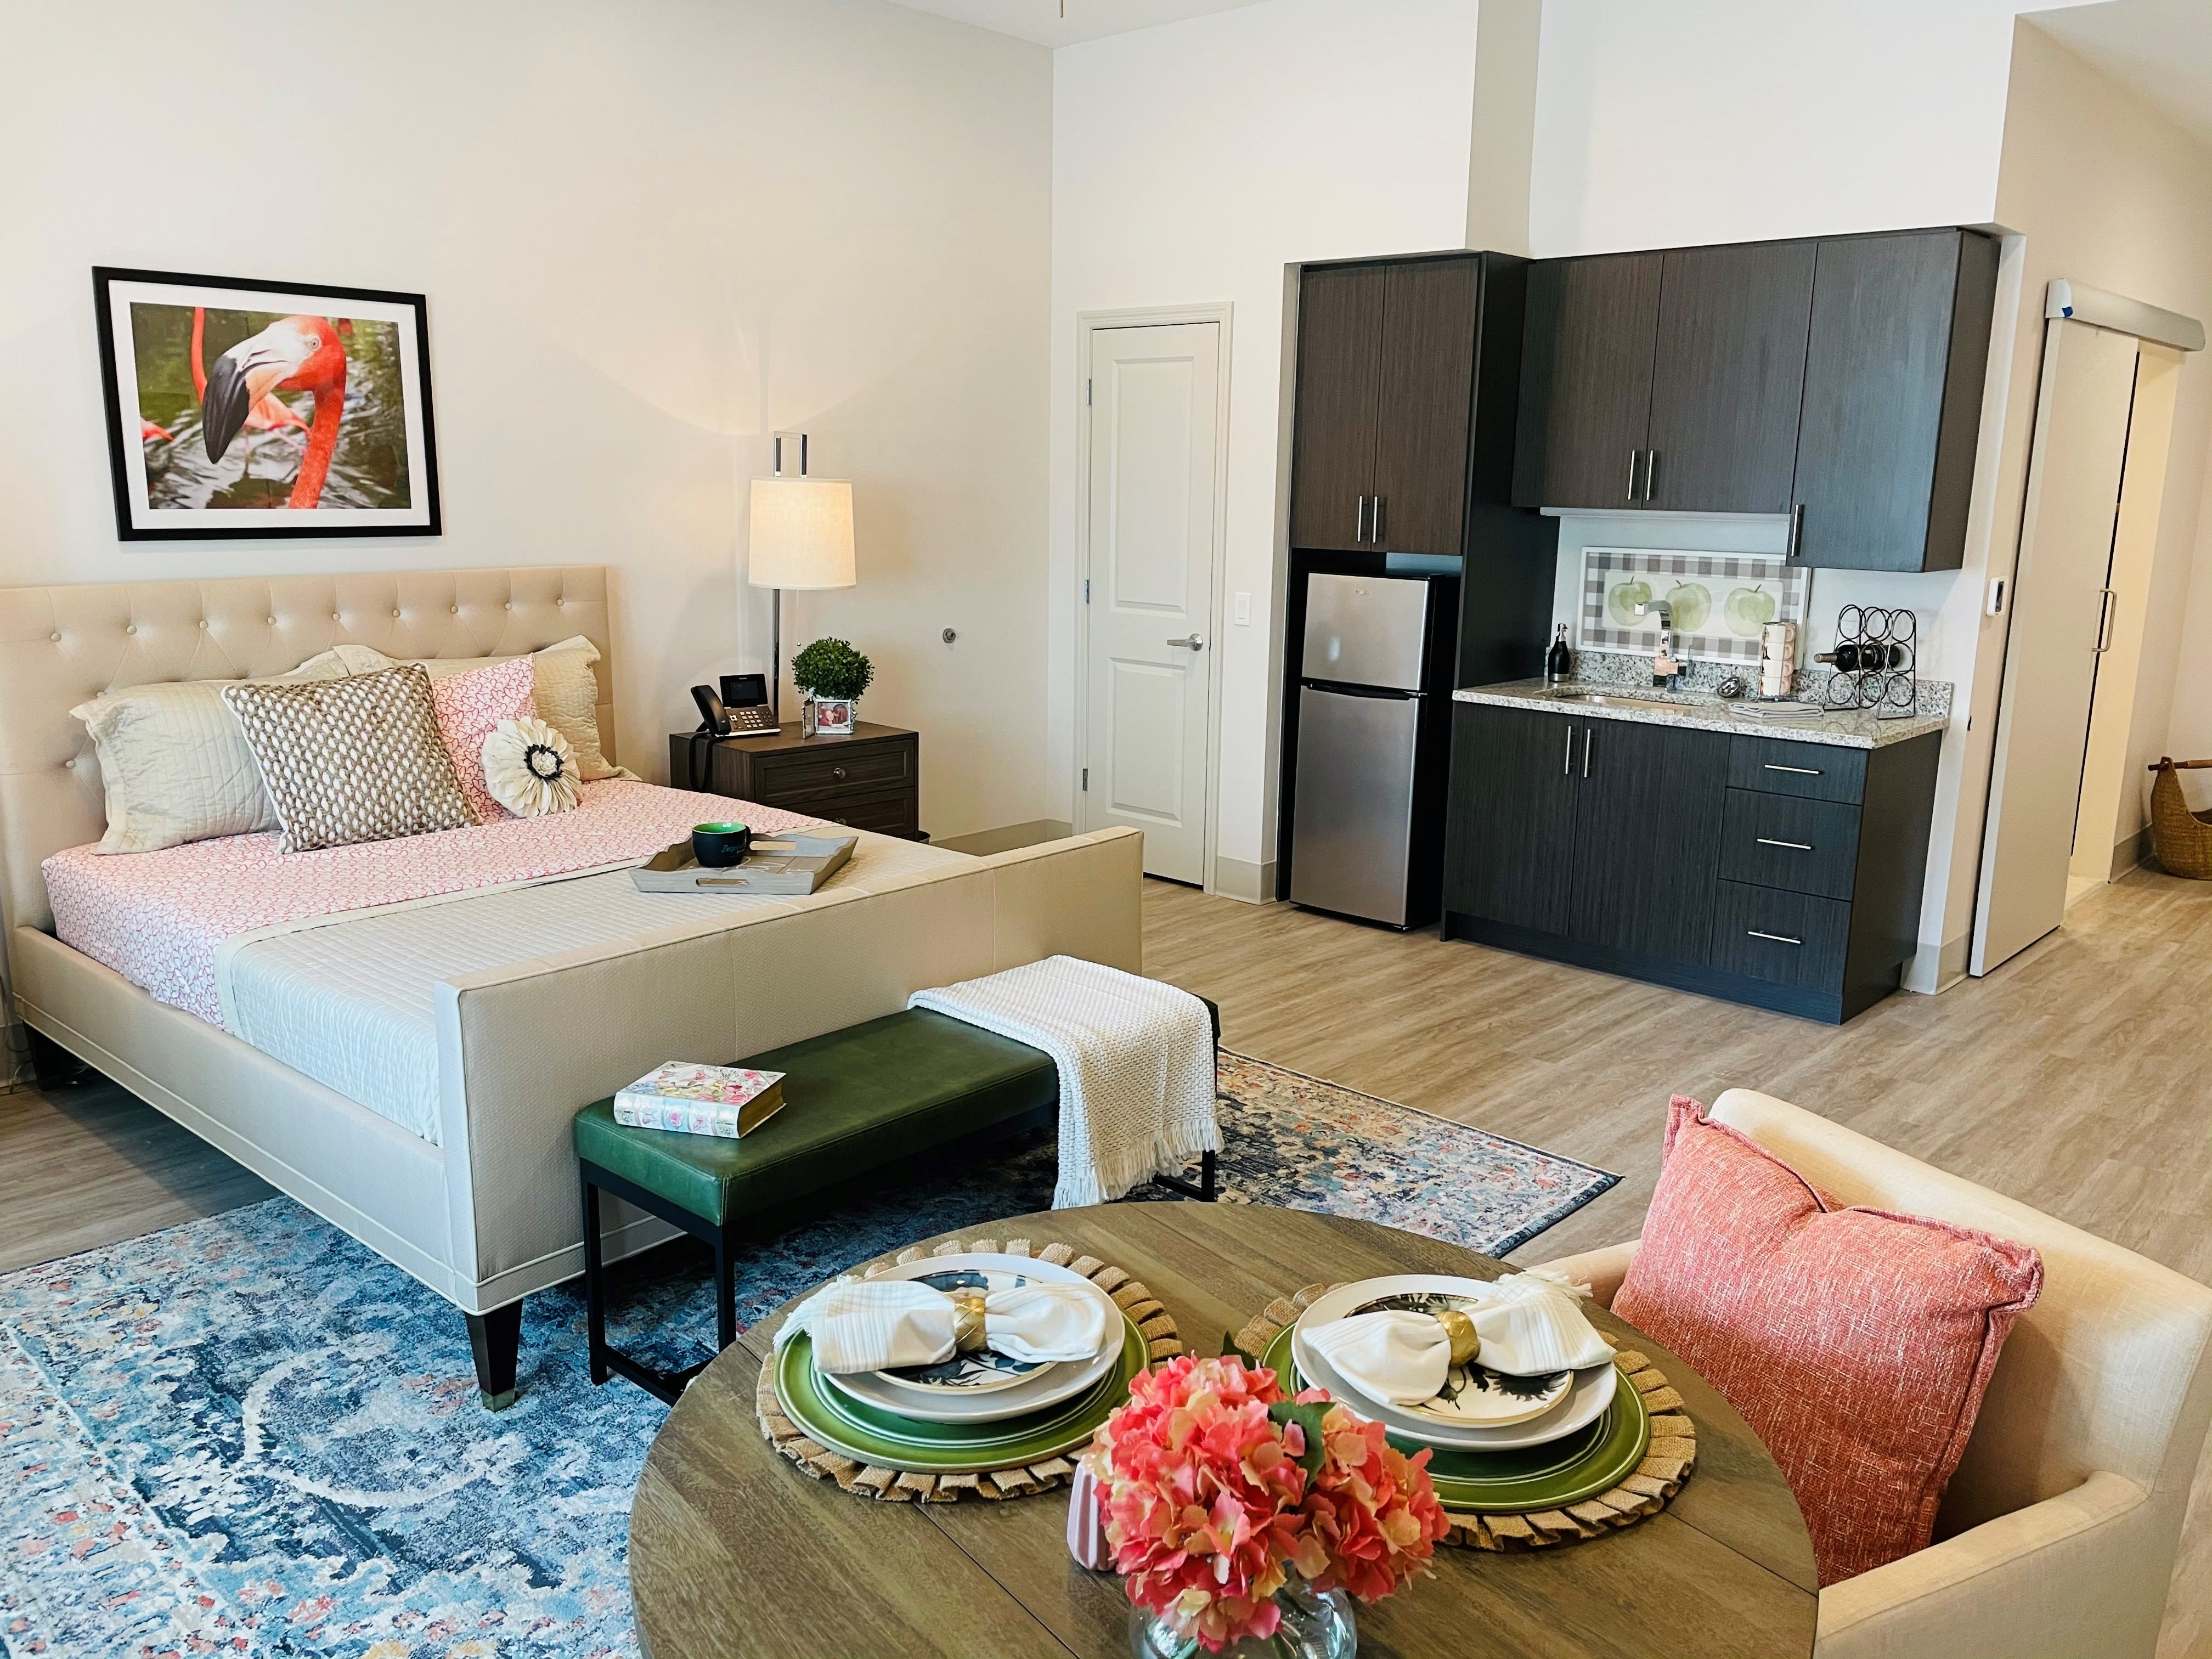 A Model Room of Inspired Living Royal Palm Beach in Royal Palm Beach, Florida